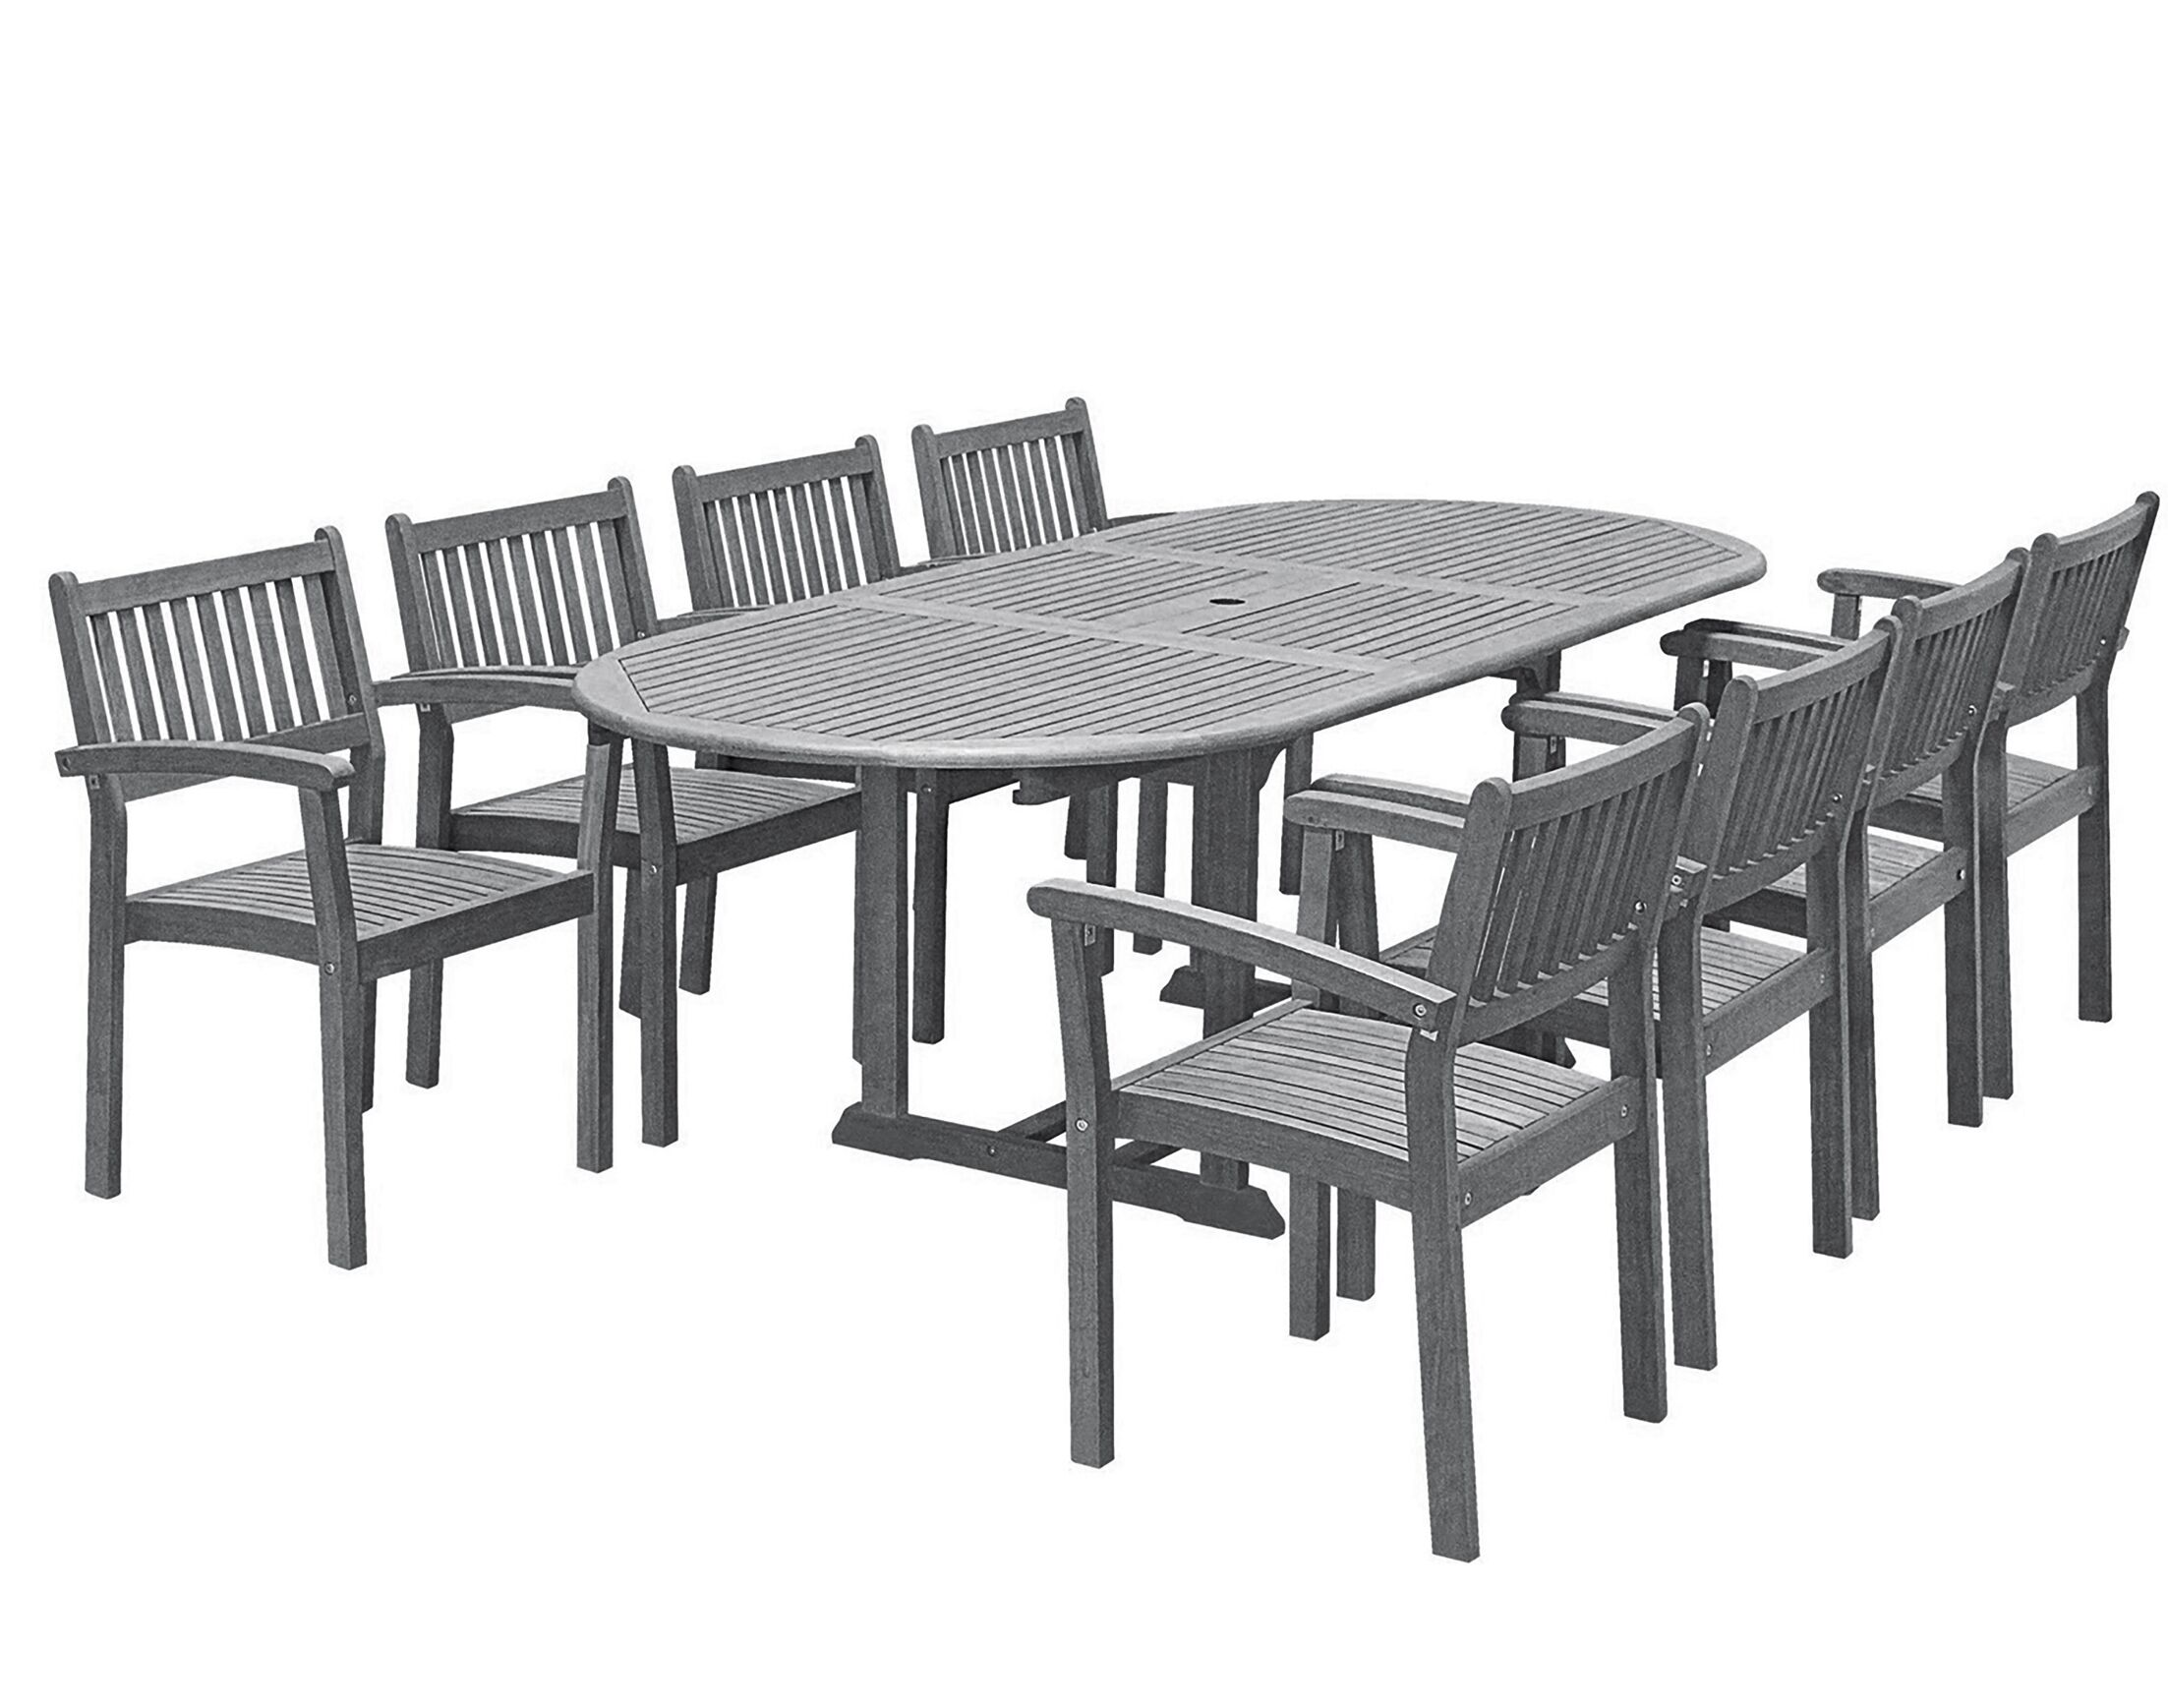 Drees 9 Piece Dining Set